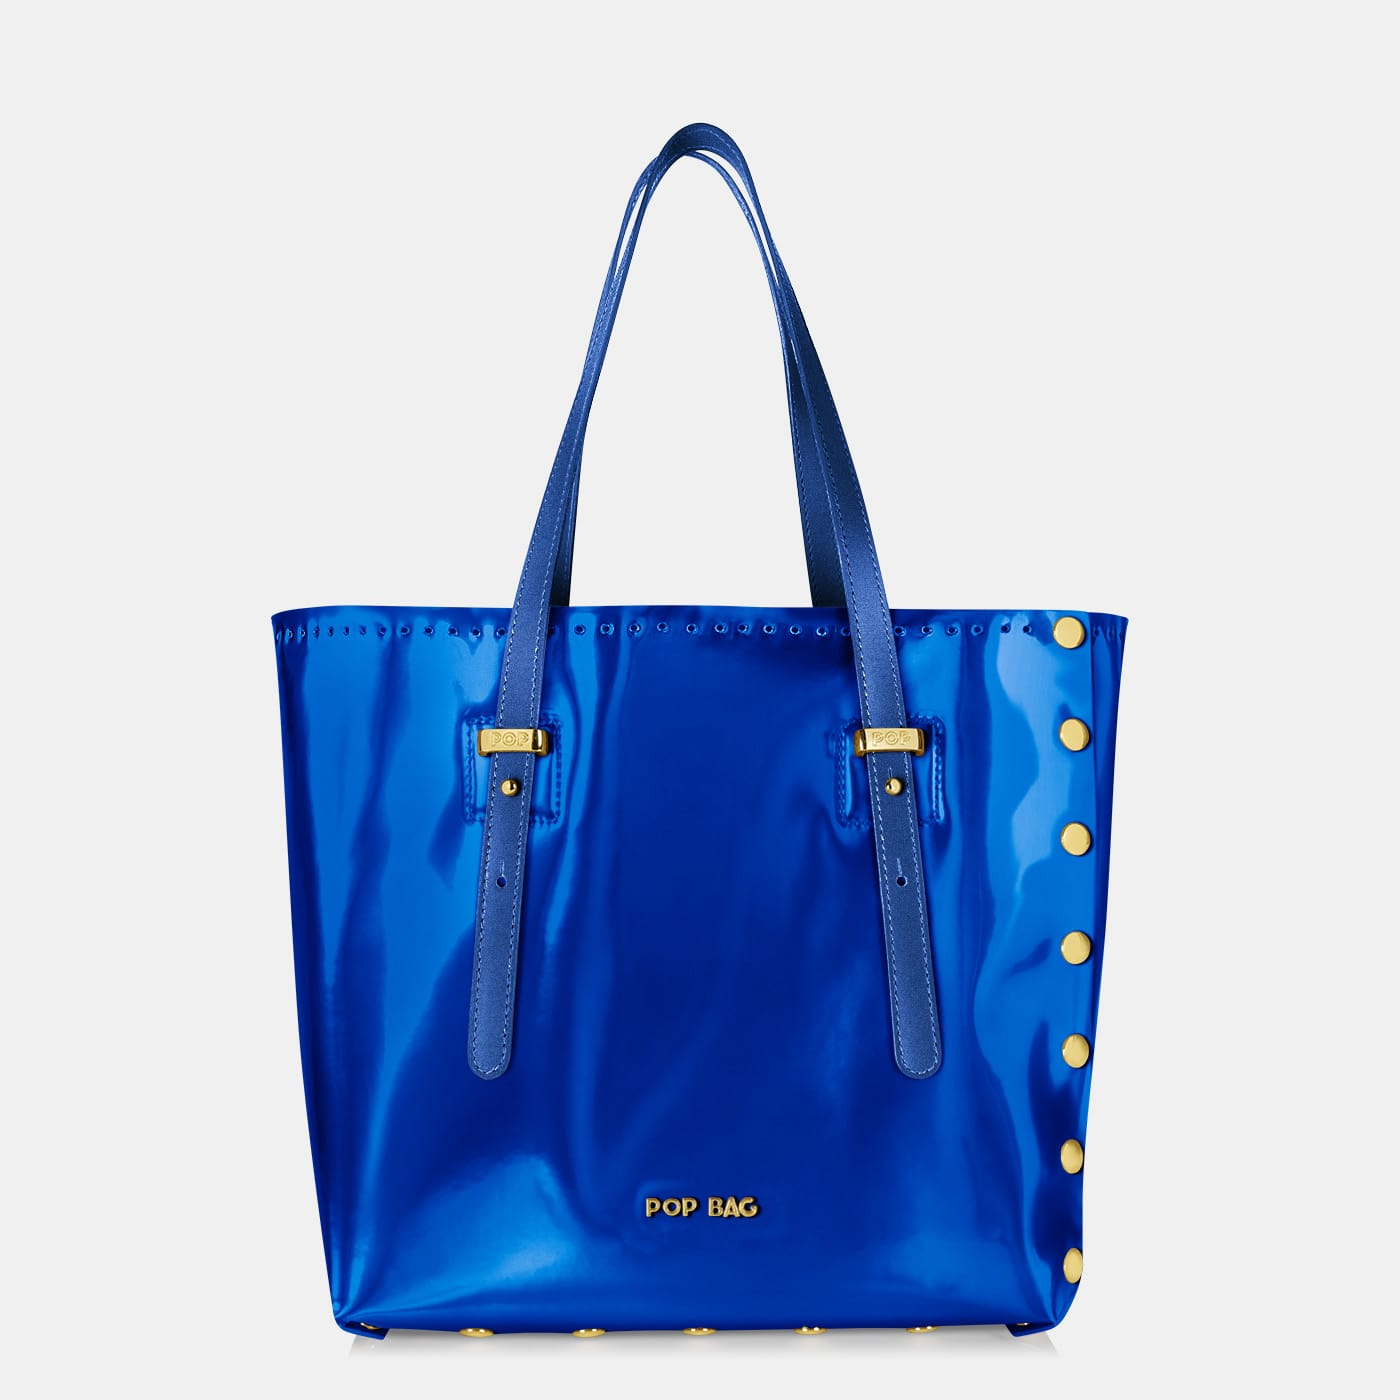 Pop Aurora Bag - Electric Blue Iridescent - Medium